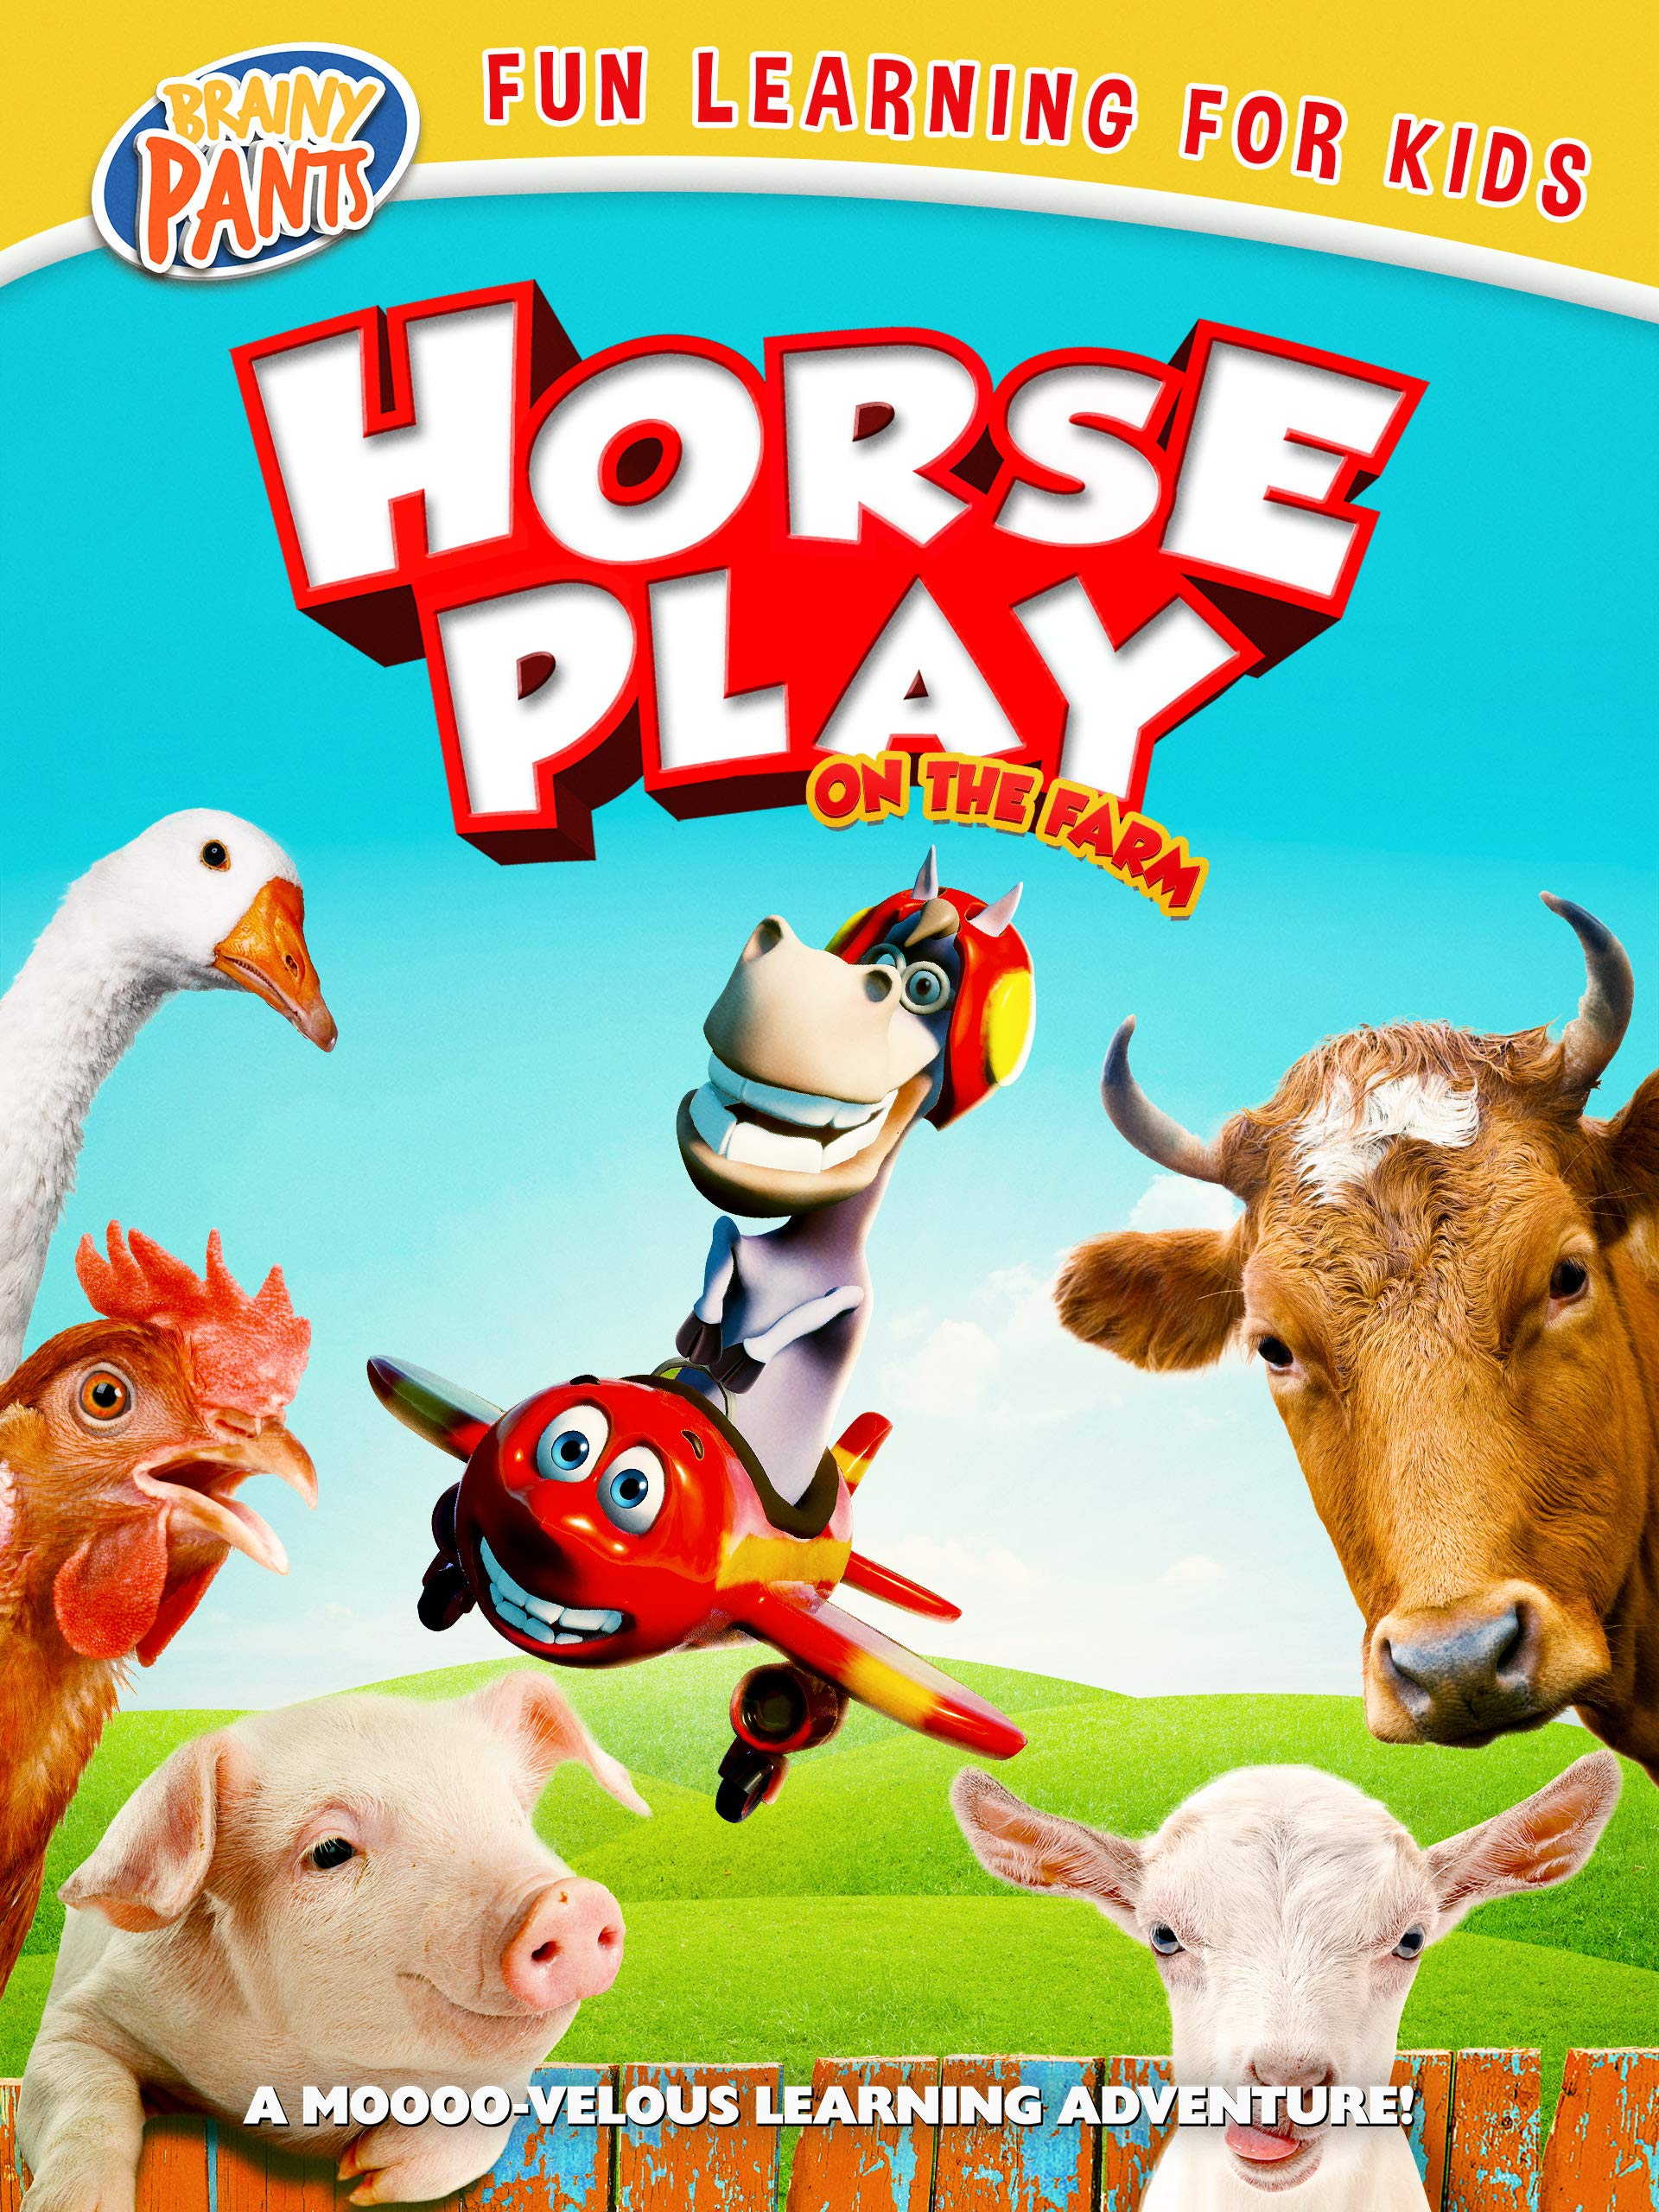 Horseplay: On the Farm